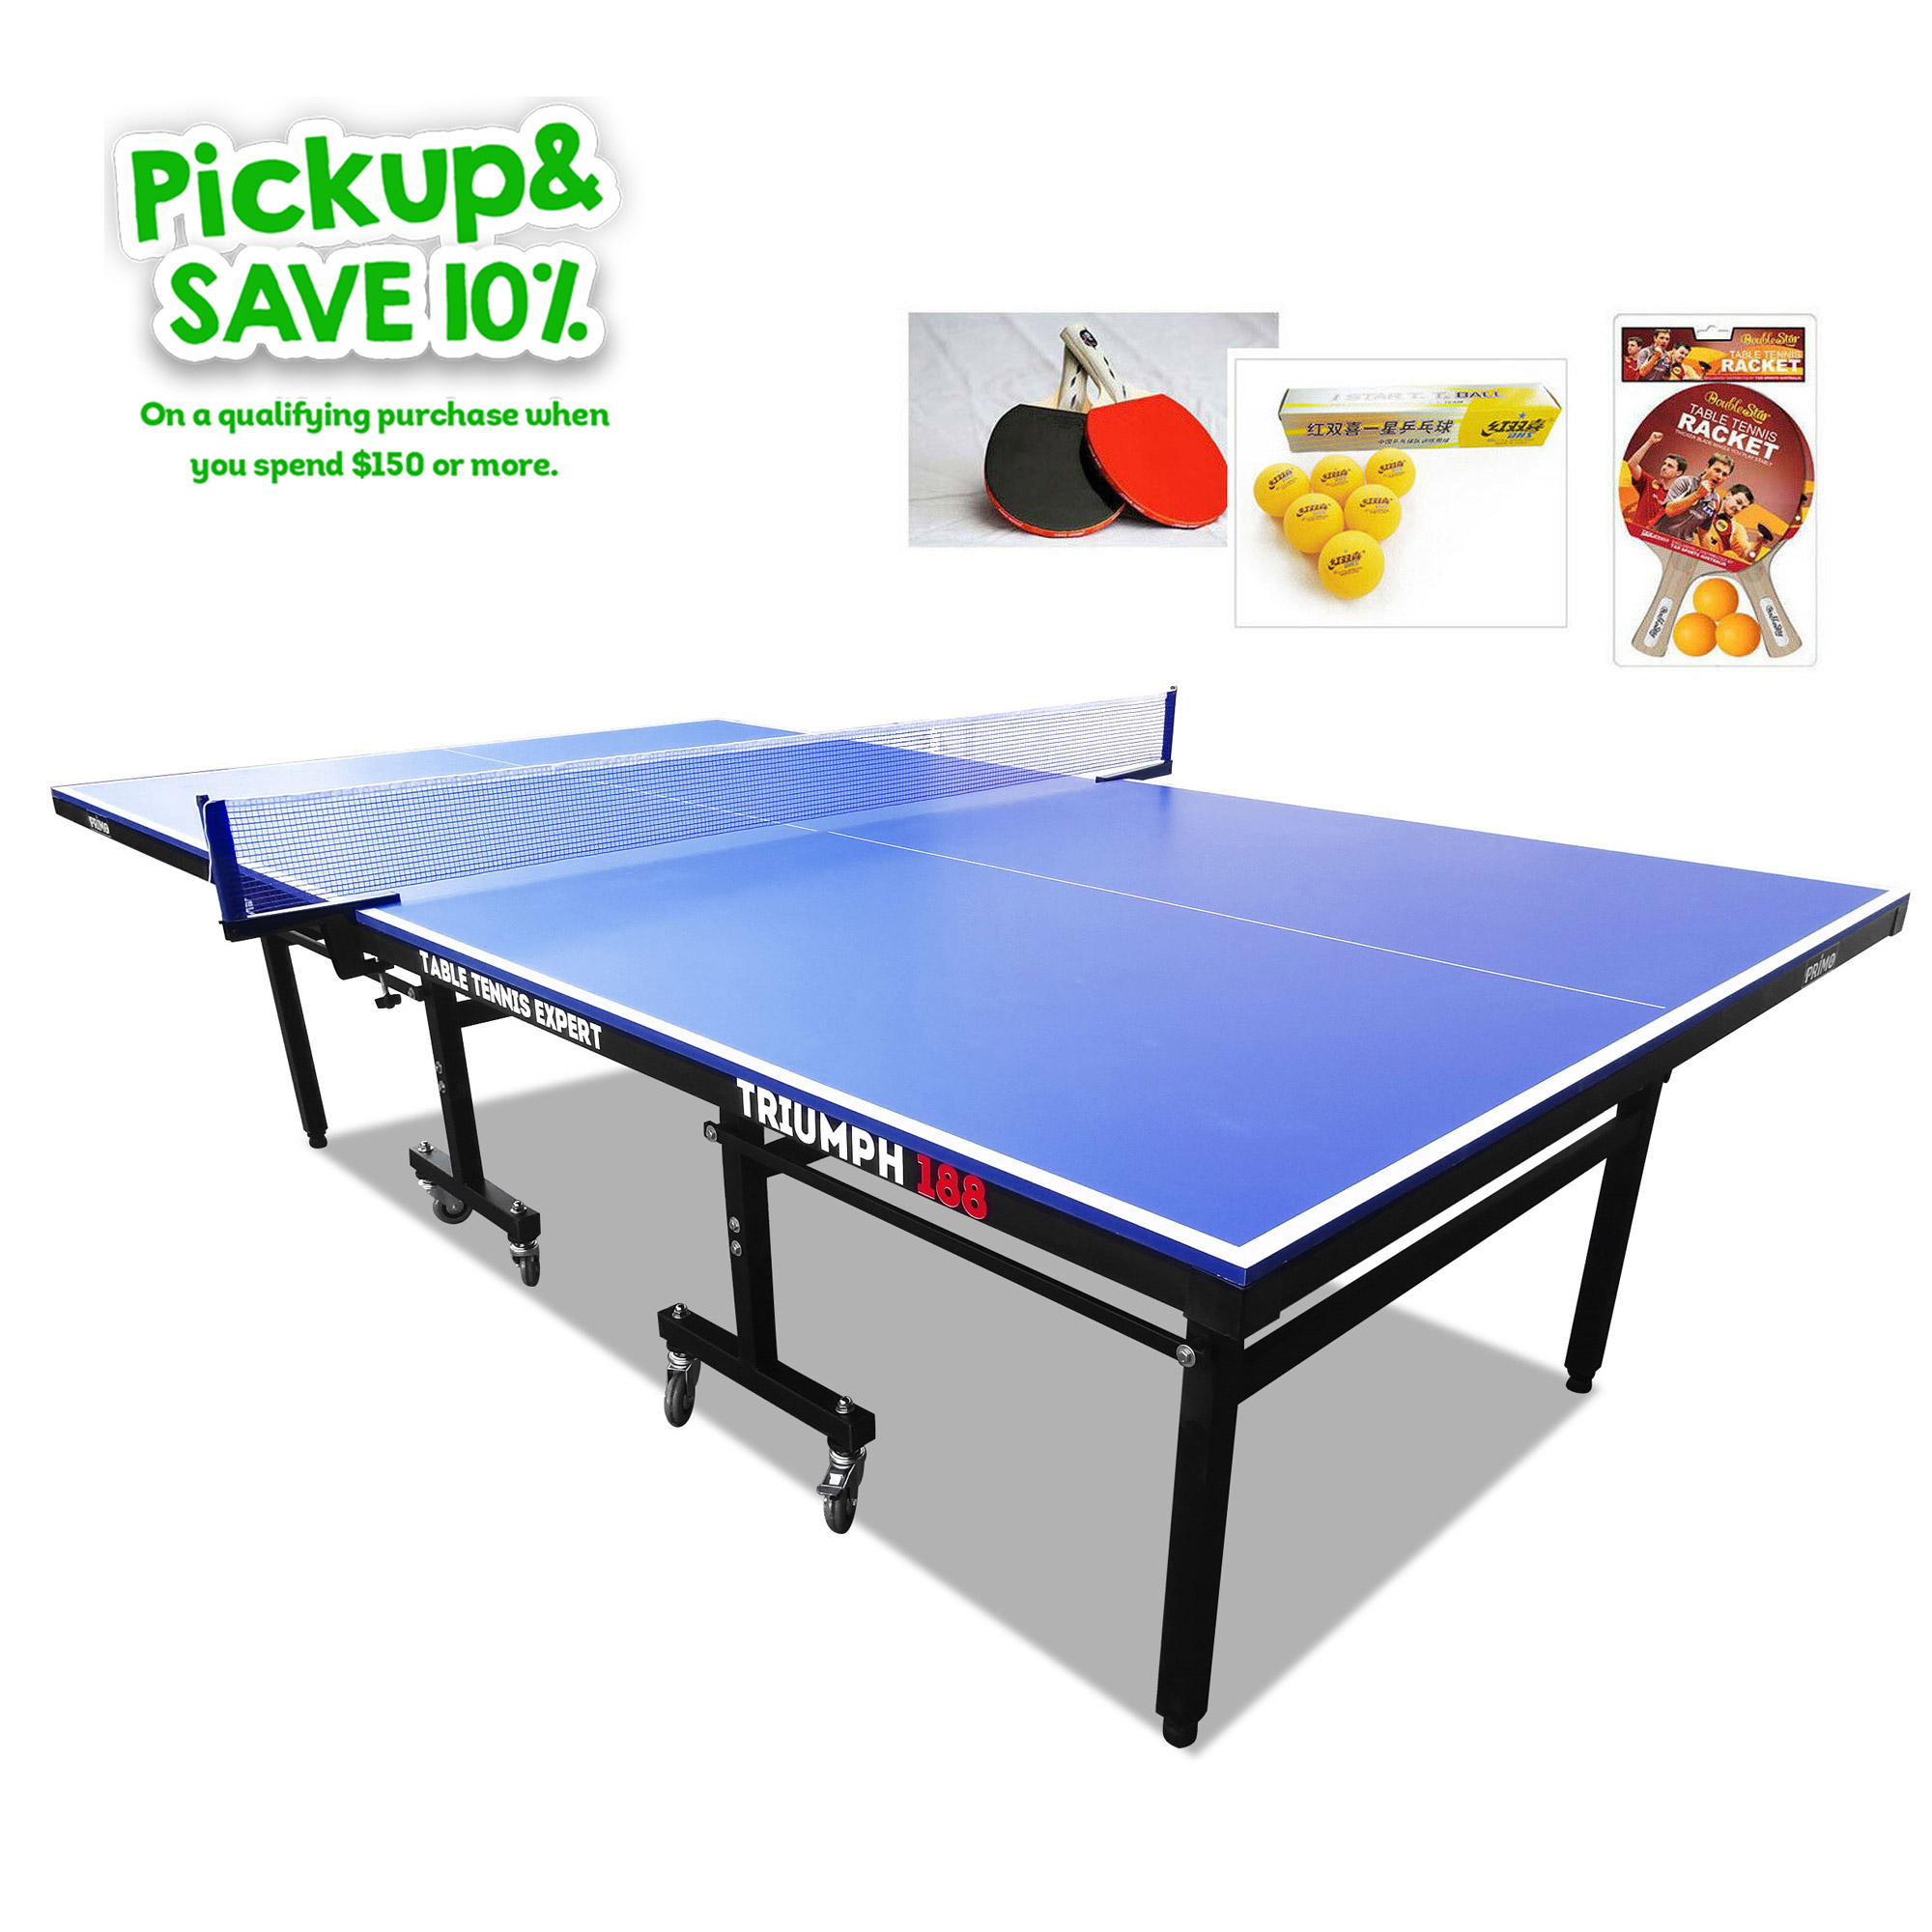 PRIMO Triumph 188 Pro Size Outdoor Table Tennis Ping Pong Table with Upgraded Accessory Package